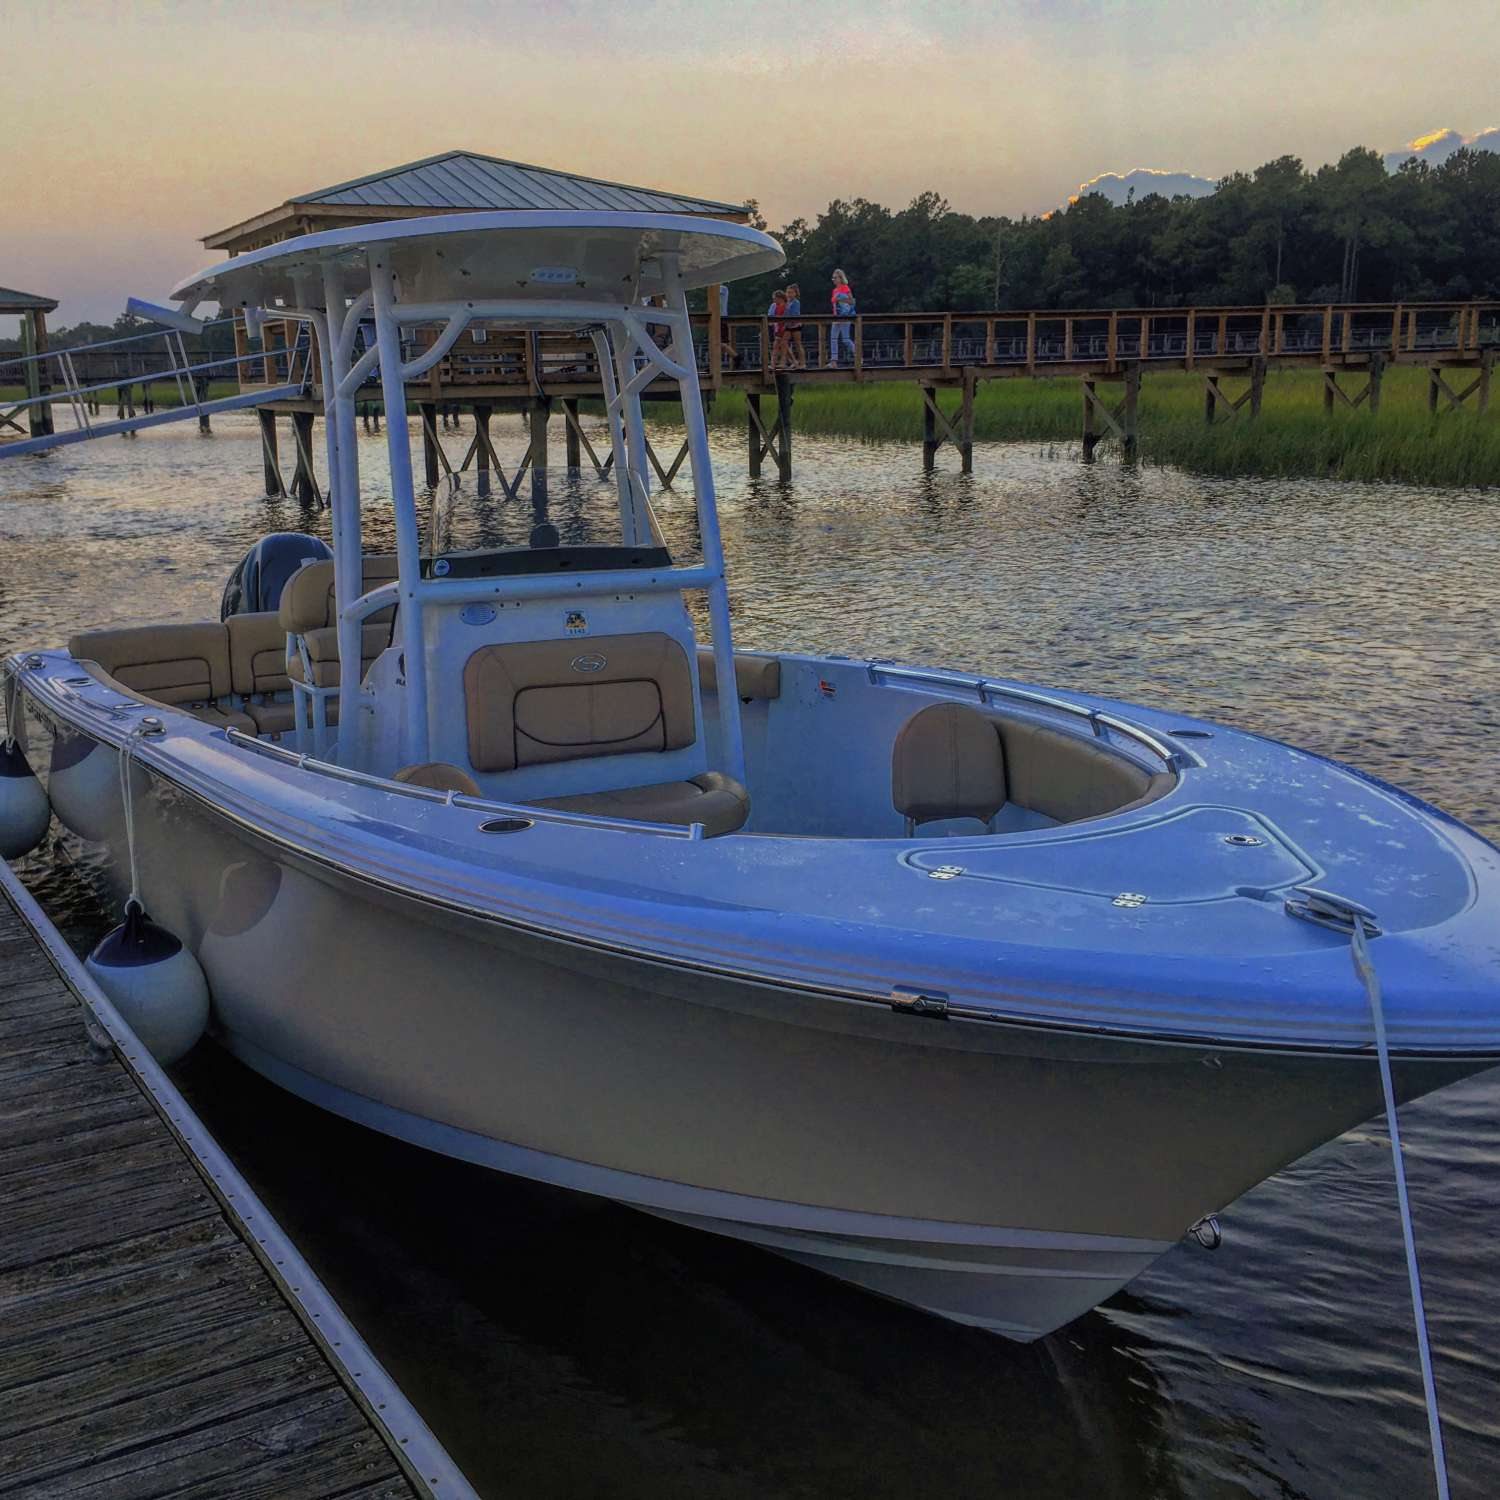 Title: Great Weekend On The Water - On board their Sportsman Heritage 231 Center Console - Location: Charleston, South Carolina. Participating in the Photo Contest #SportsmanJuly2017